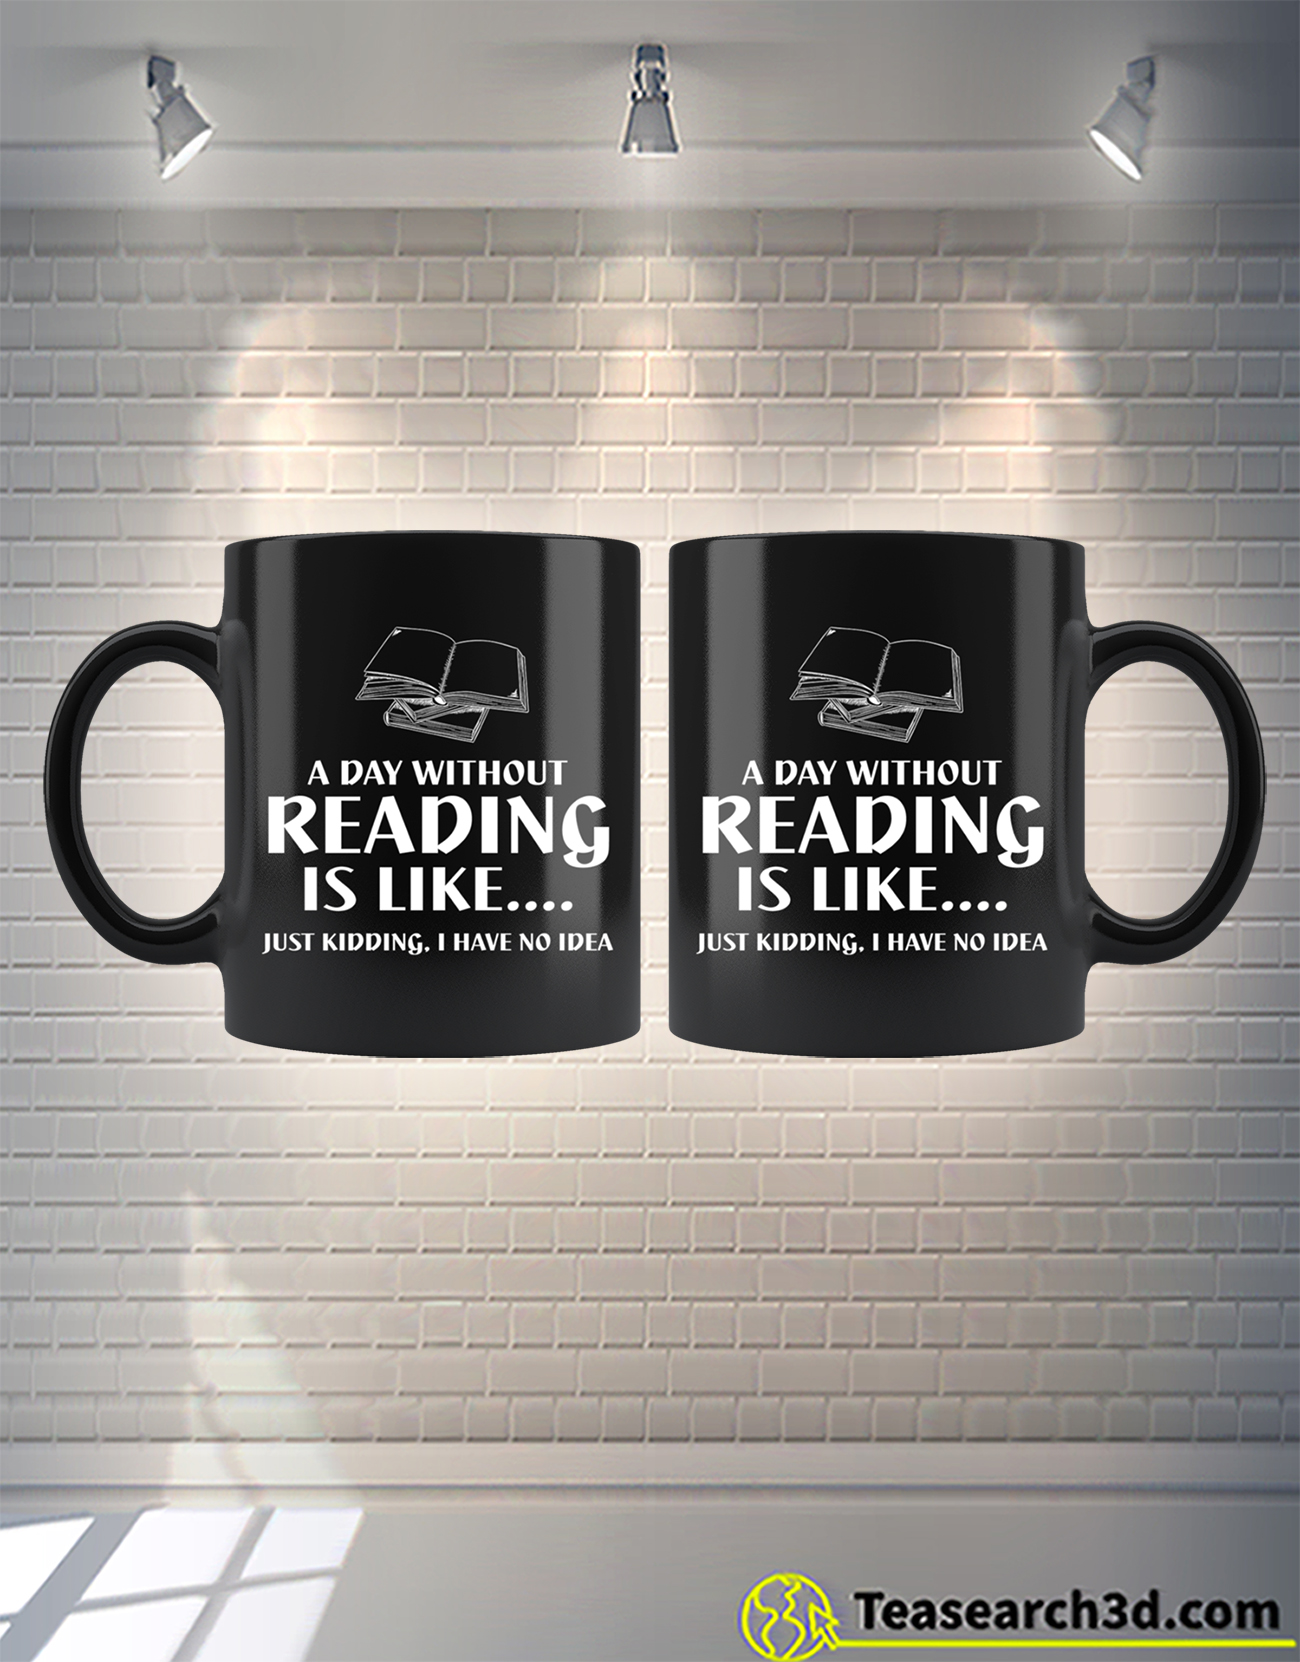 A day without reading is like just kidding I have no idea mug 2